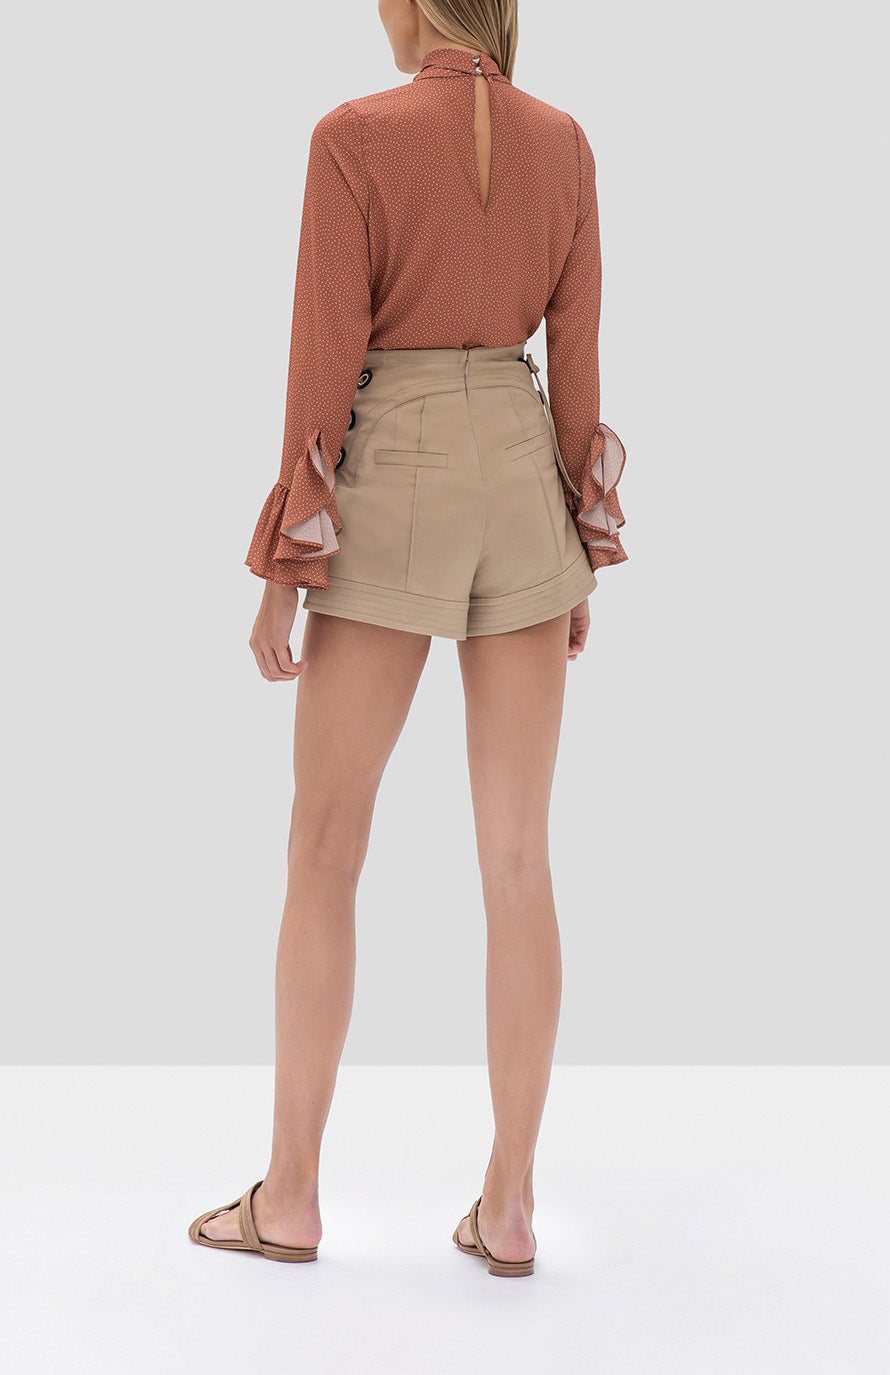 Alexis Odellia Top Tan Dot and Winnick Short Tan from the Fall Winter 2019 Ready To Wear Collection - Rear View